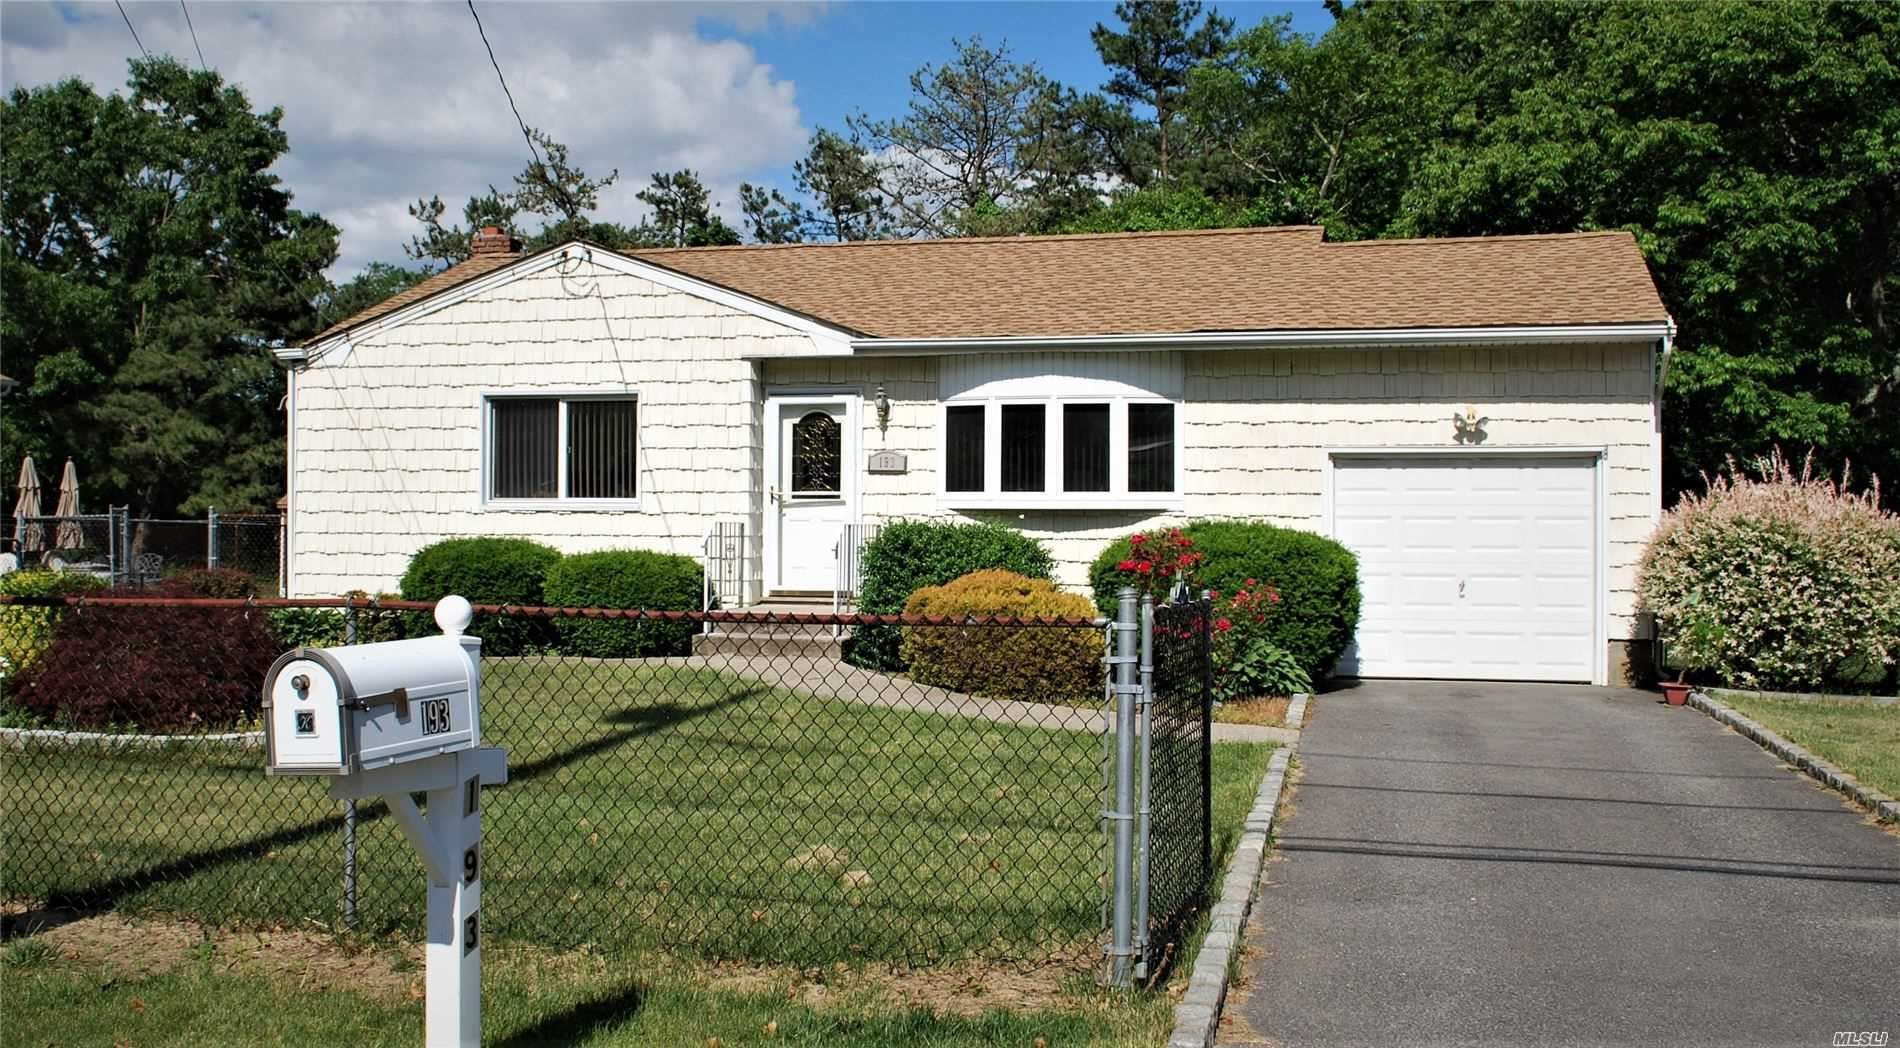 193 Powell Ave, Central Islip, NY 11722 - MLS#: 3222316